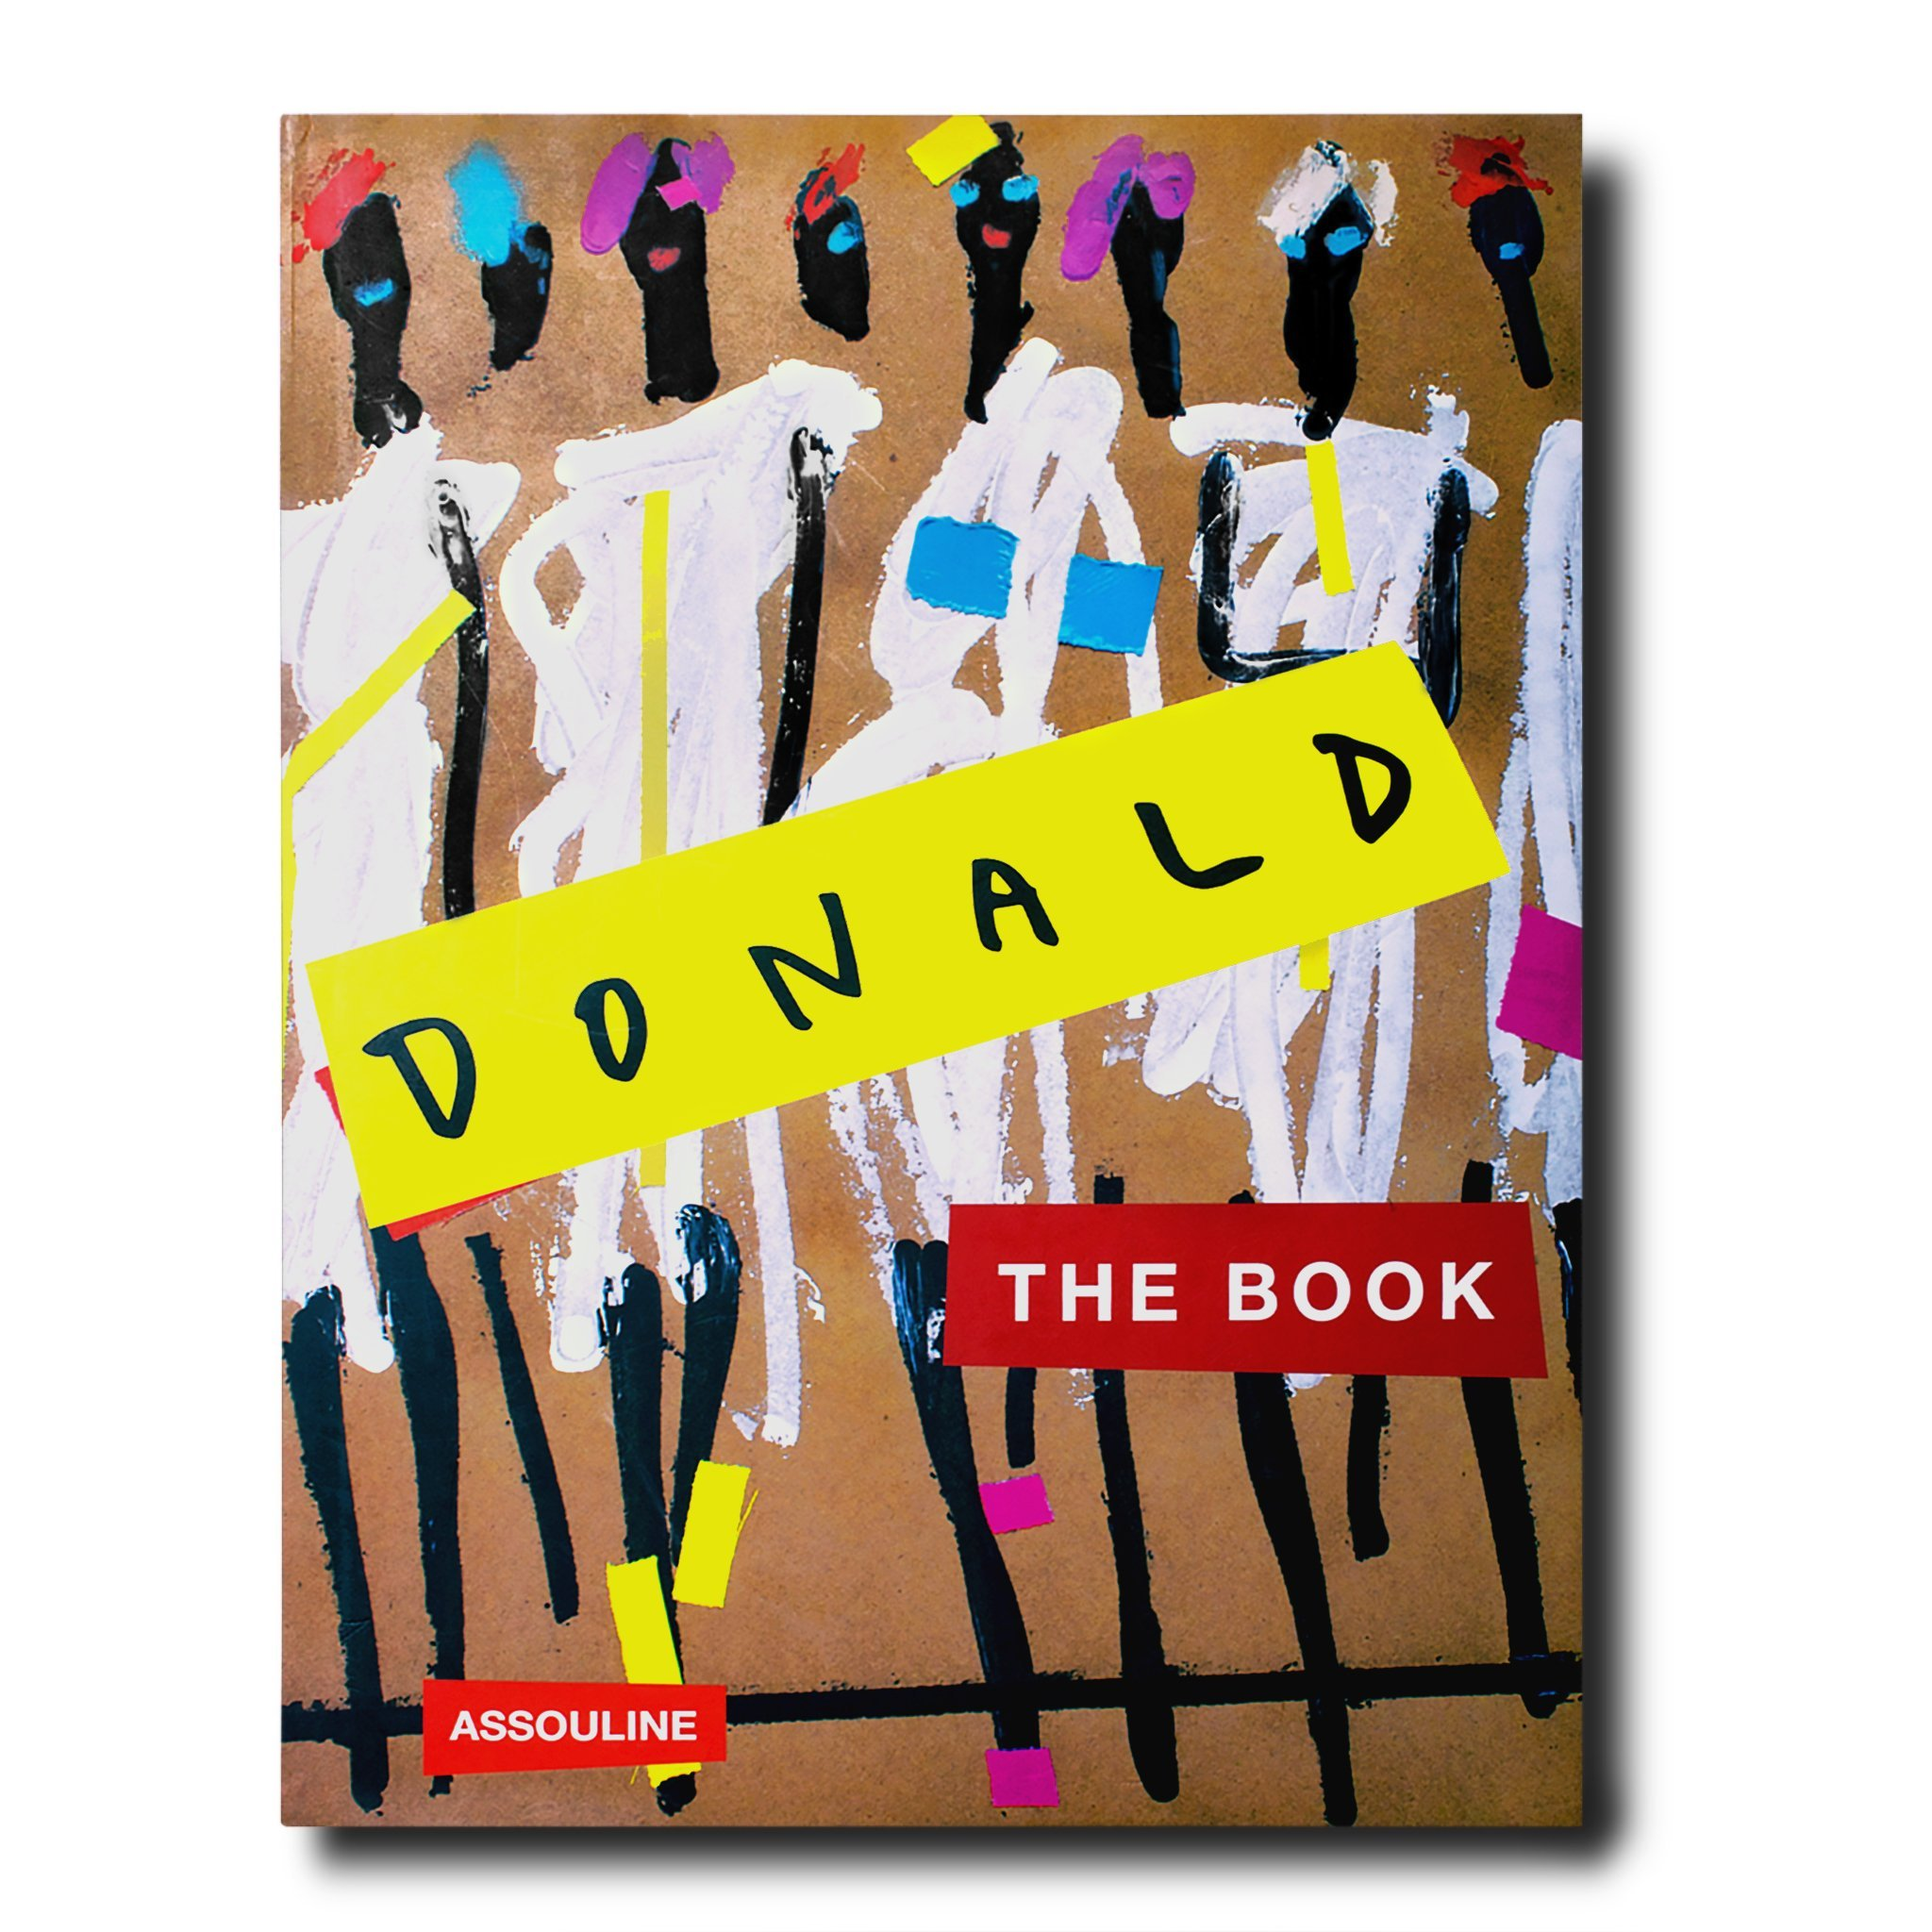 christmas gift guide - donald robertson - drawbertson - the andy warhol of instagram - assouline - luxury gifts for her - luxury gifts for him - donald the book - martine and prosper assouline